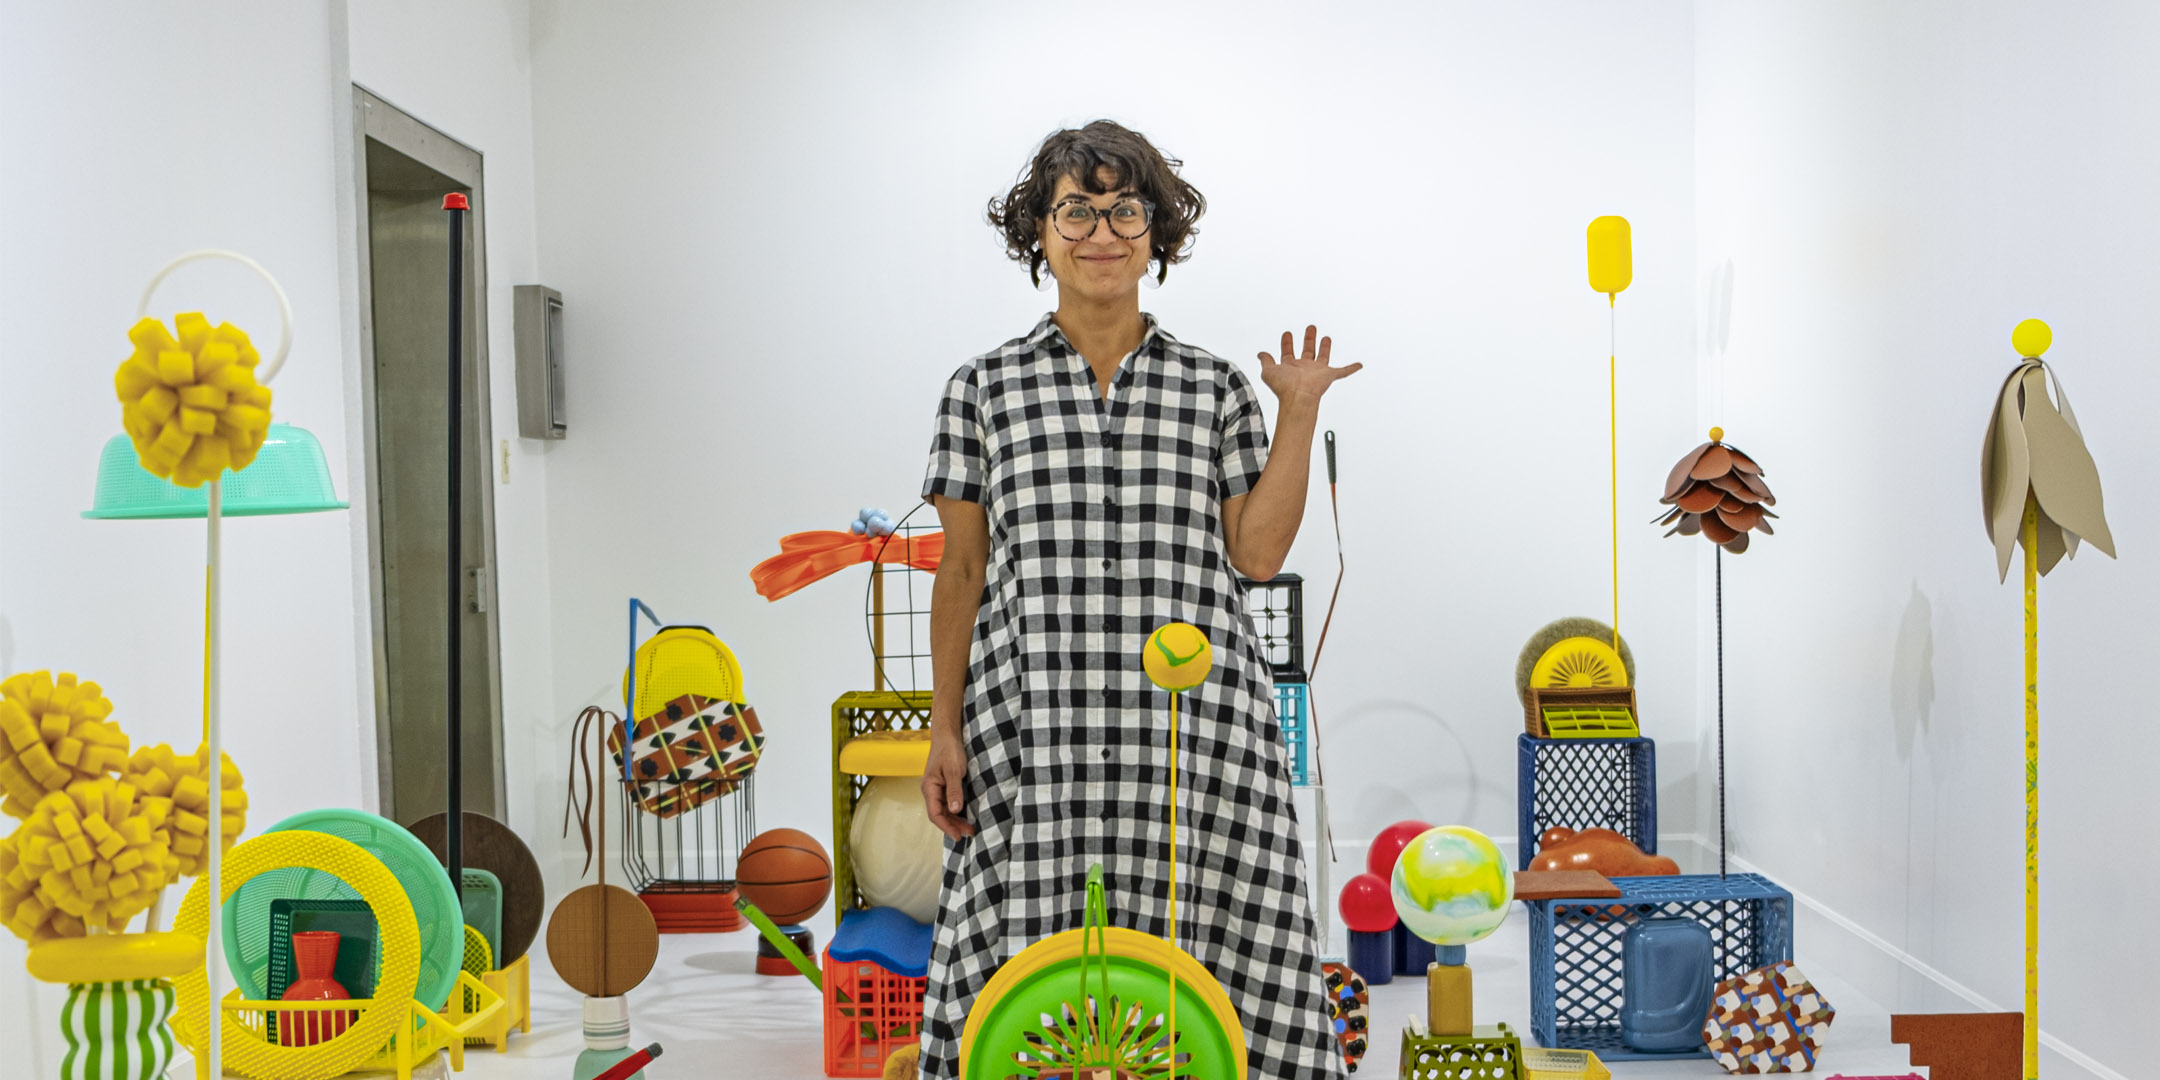 Pictured: Artist Amy Santoferraro standing in the middle of her installation.